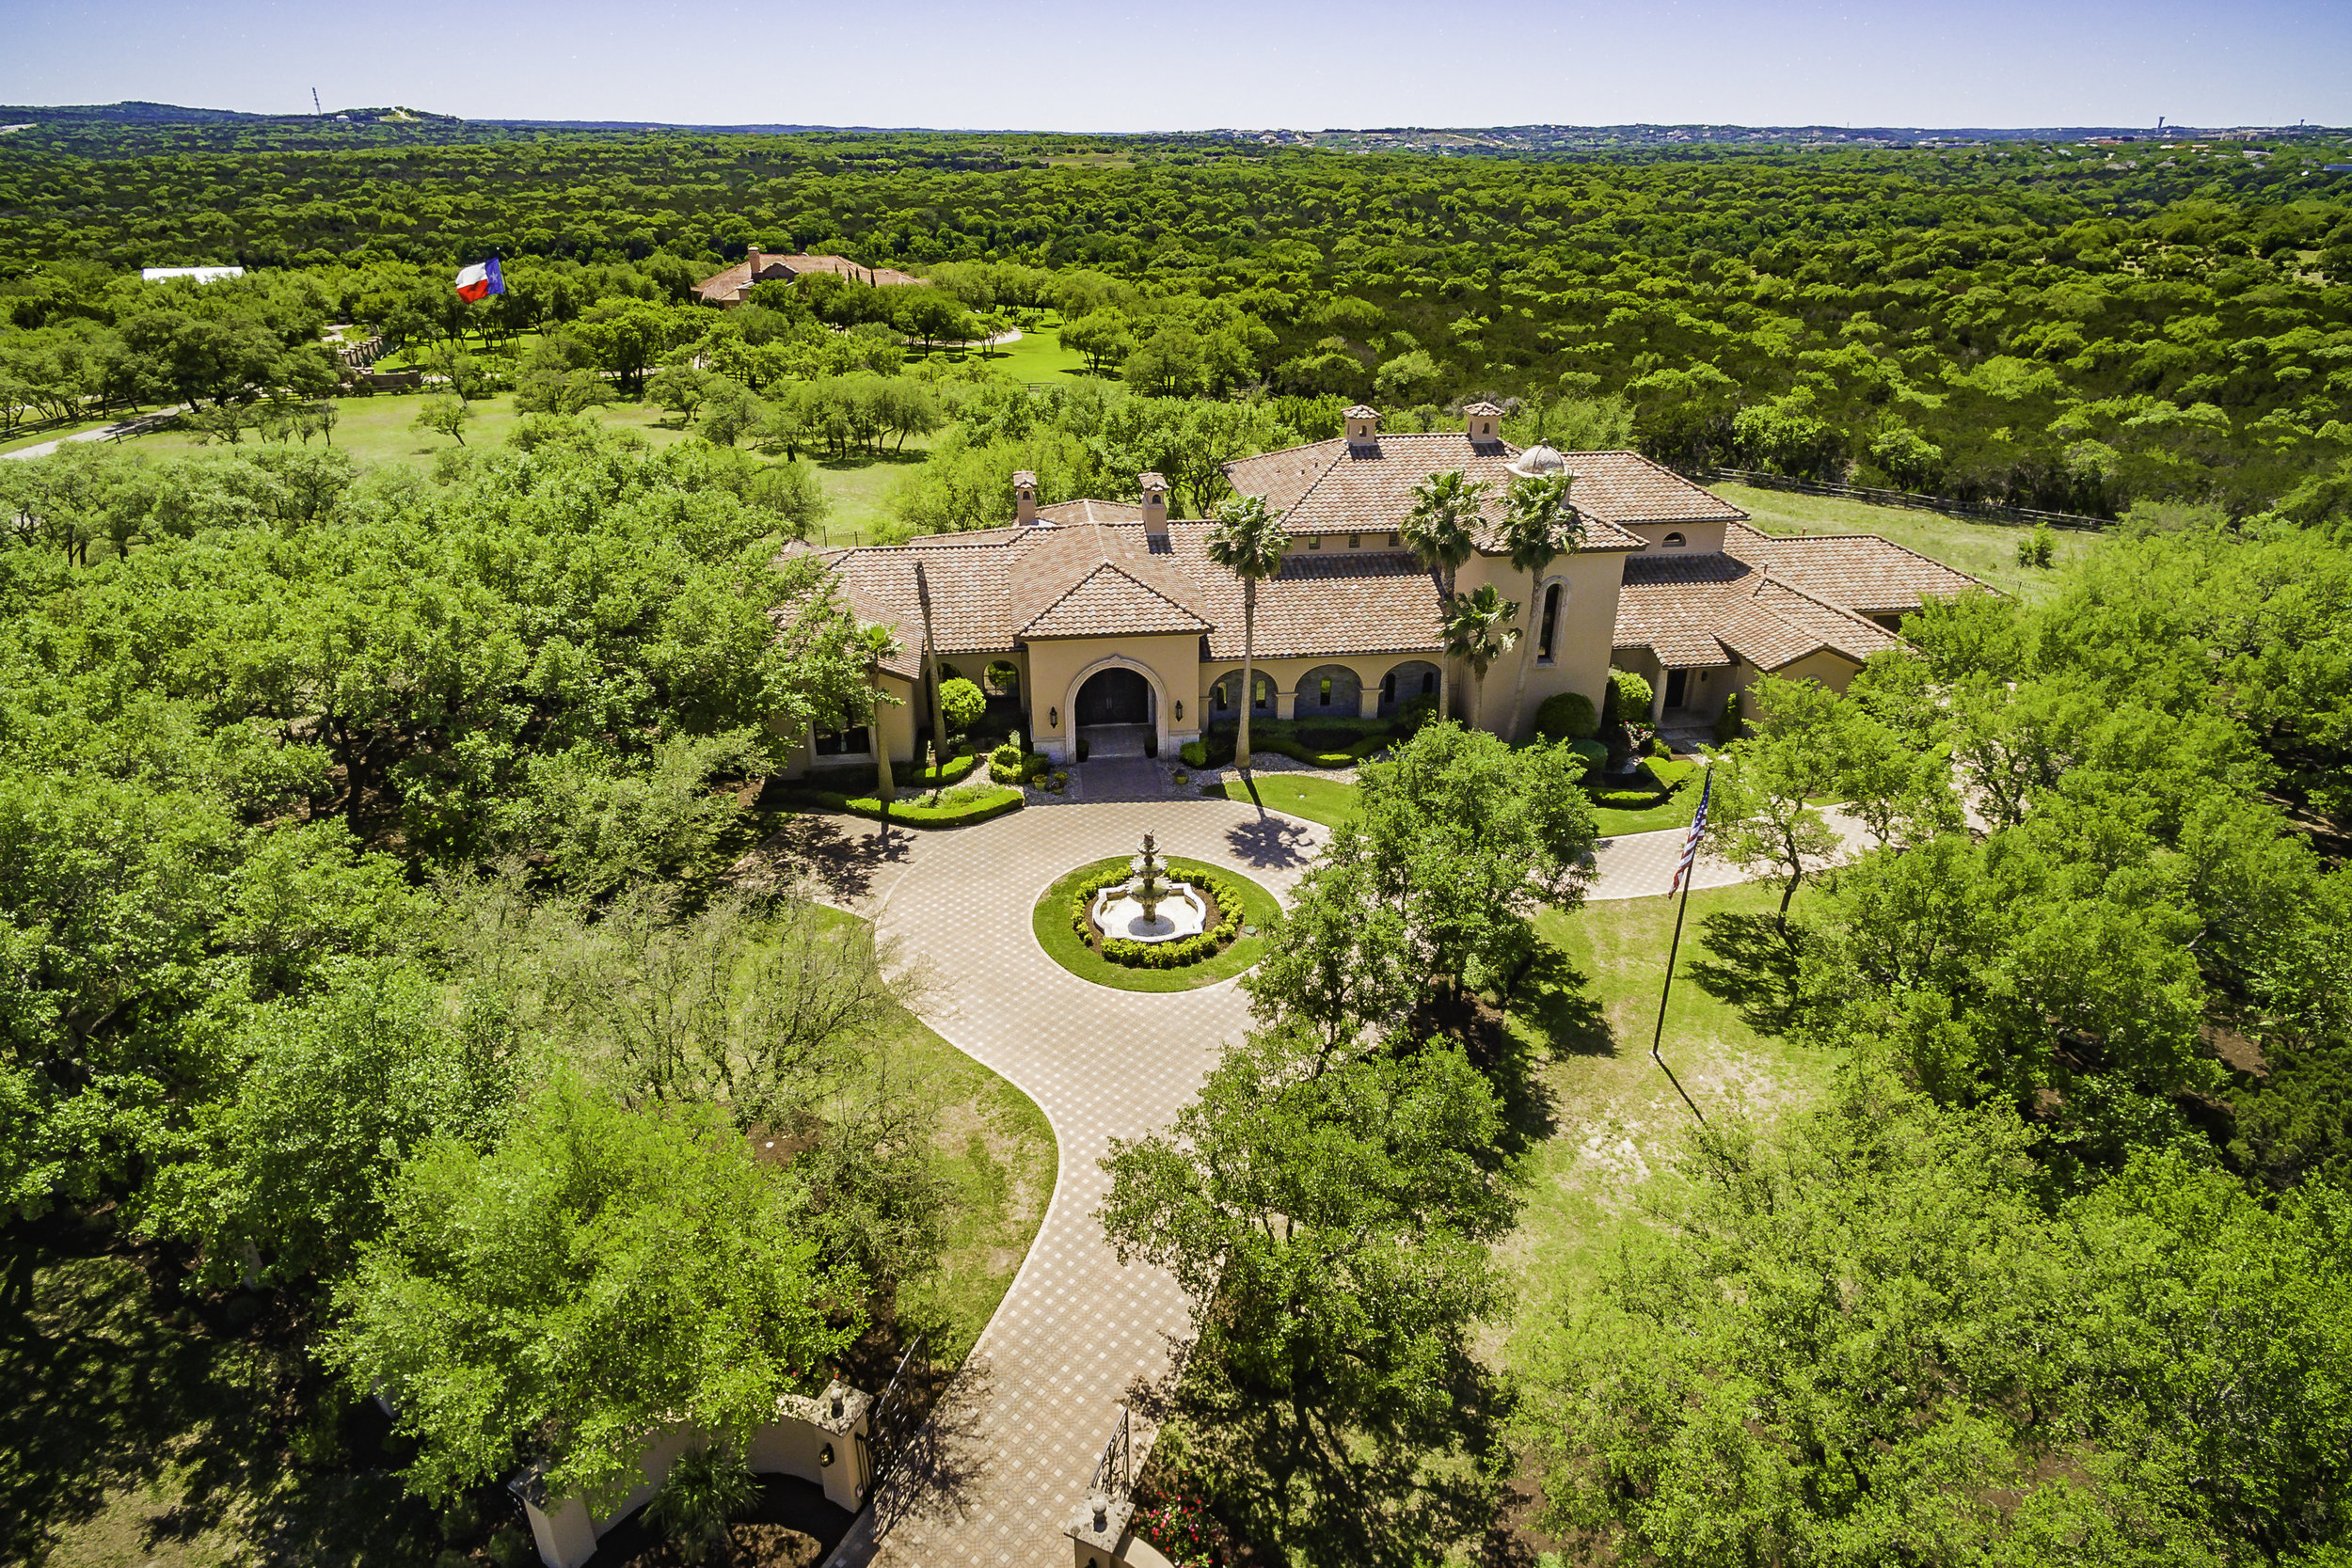 2502 Dominion Hill Aerial - Valerie DiFabio - April 2019-2.jpg